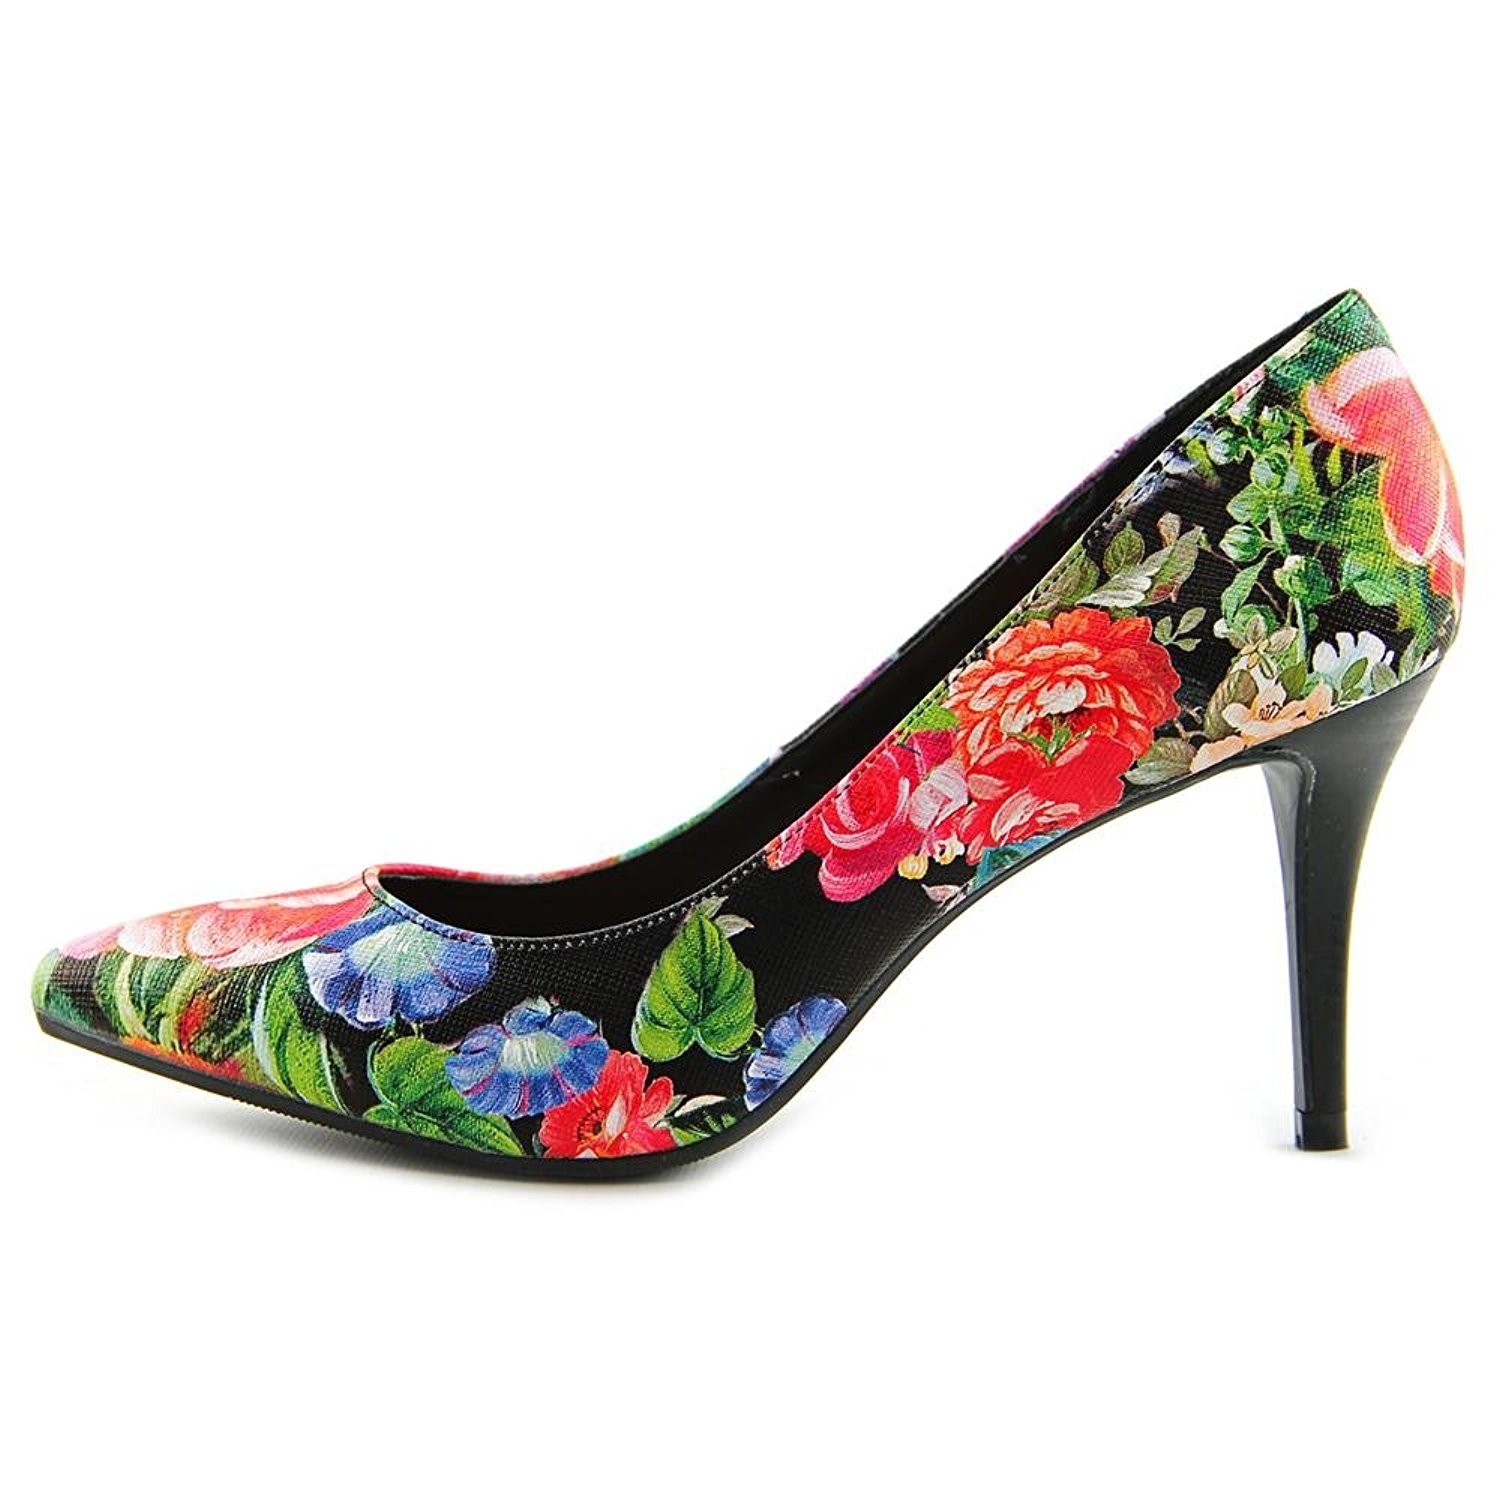 1.4.3. Girl Womens Owanda Pointed Toe Classic Pumps MultiColor Size 6.0 OKCp